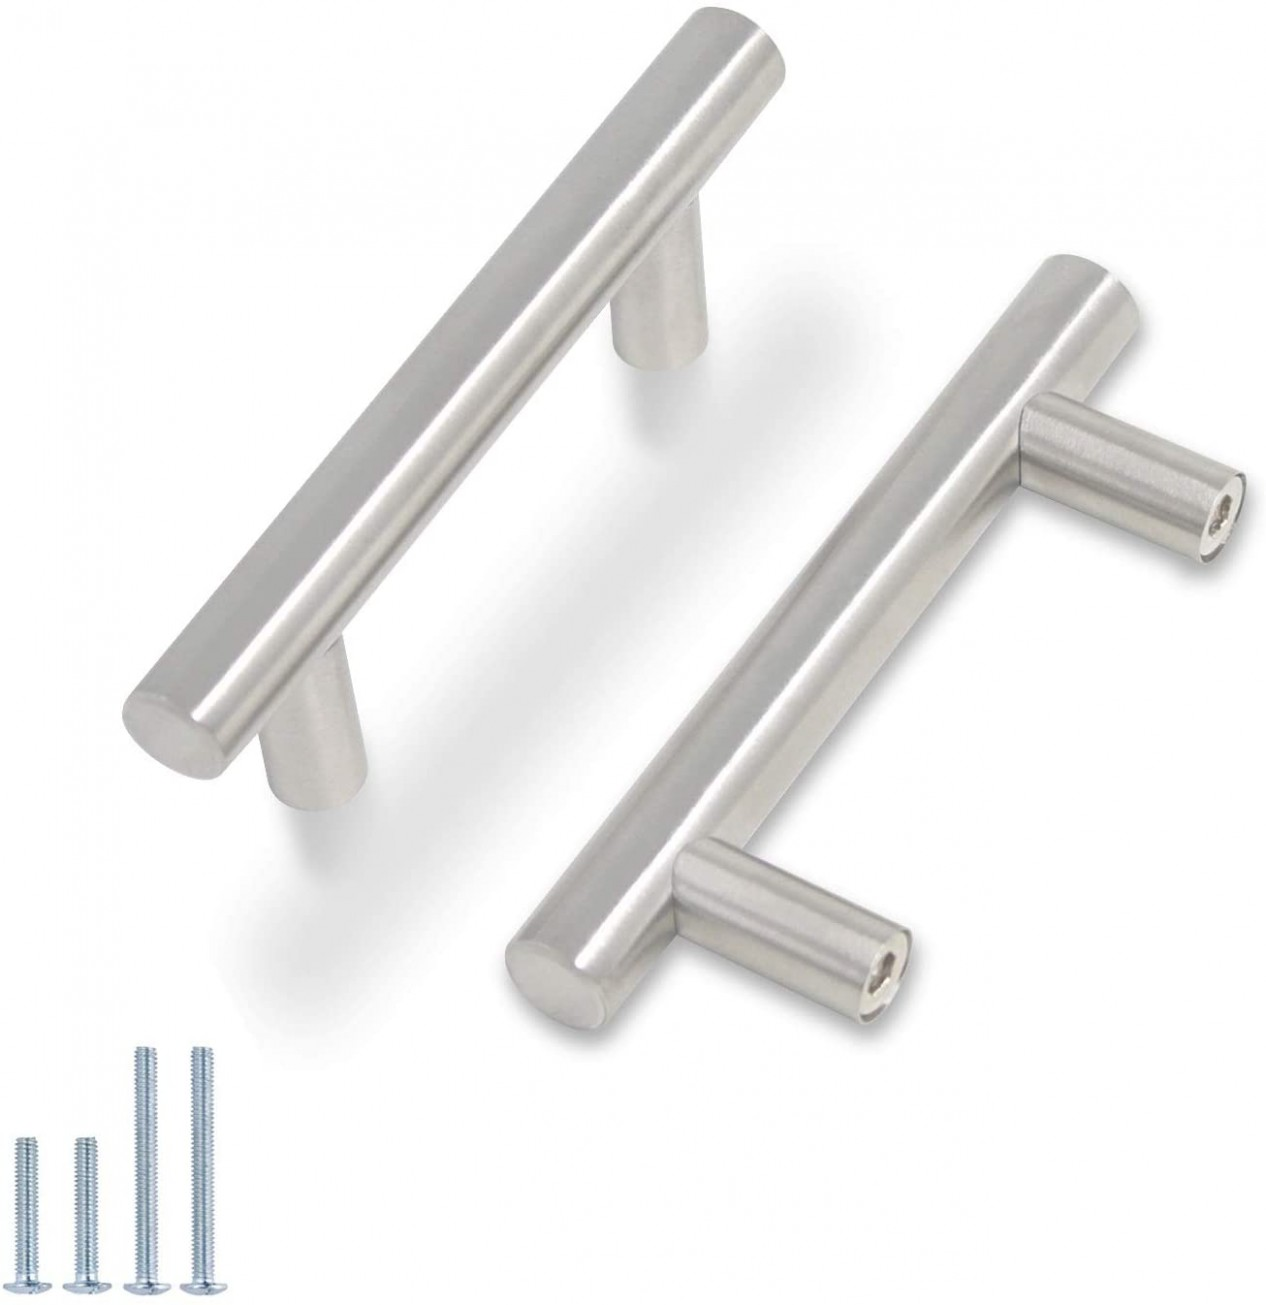 Probrico Stainless Steel Modern Cabinet Handles, Drawer Pulls, Kitchen  Cupboard T Bar Knobs and Pull Handles Brushed Nickel - 1111-11/1111 Inch Screw  Spacing  - Kitchen Cabinet Handle Screws